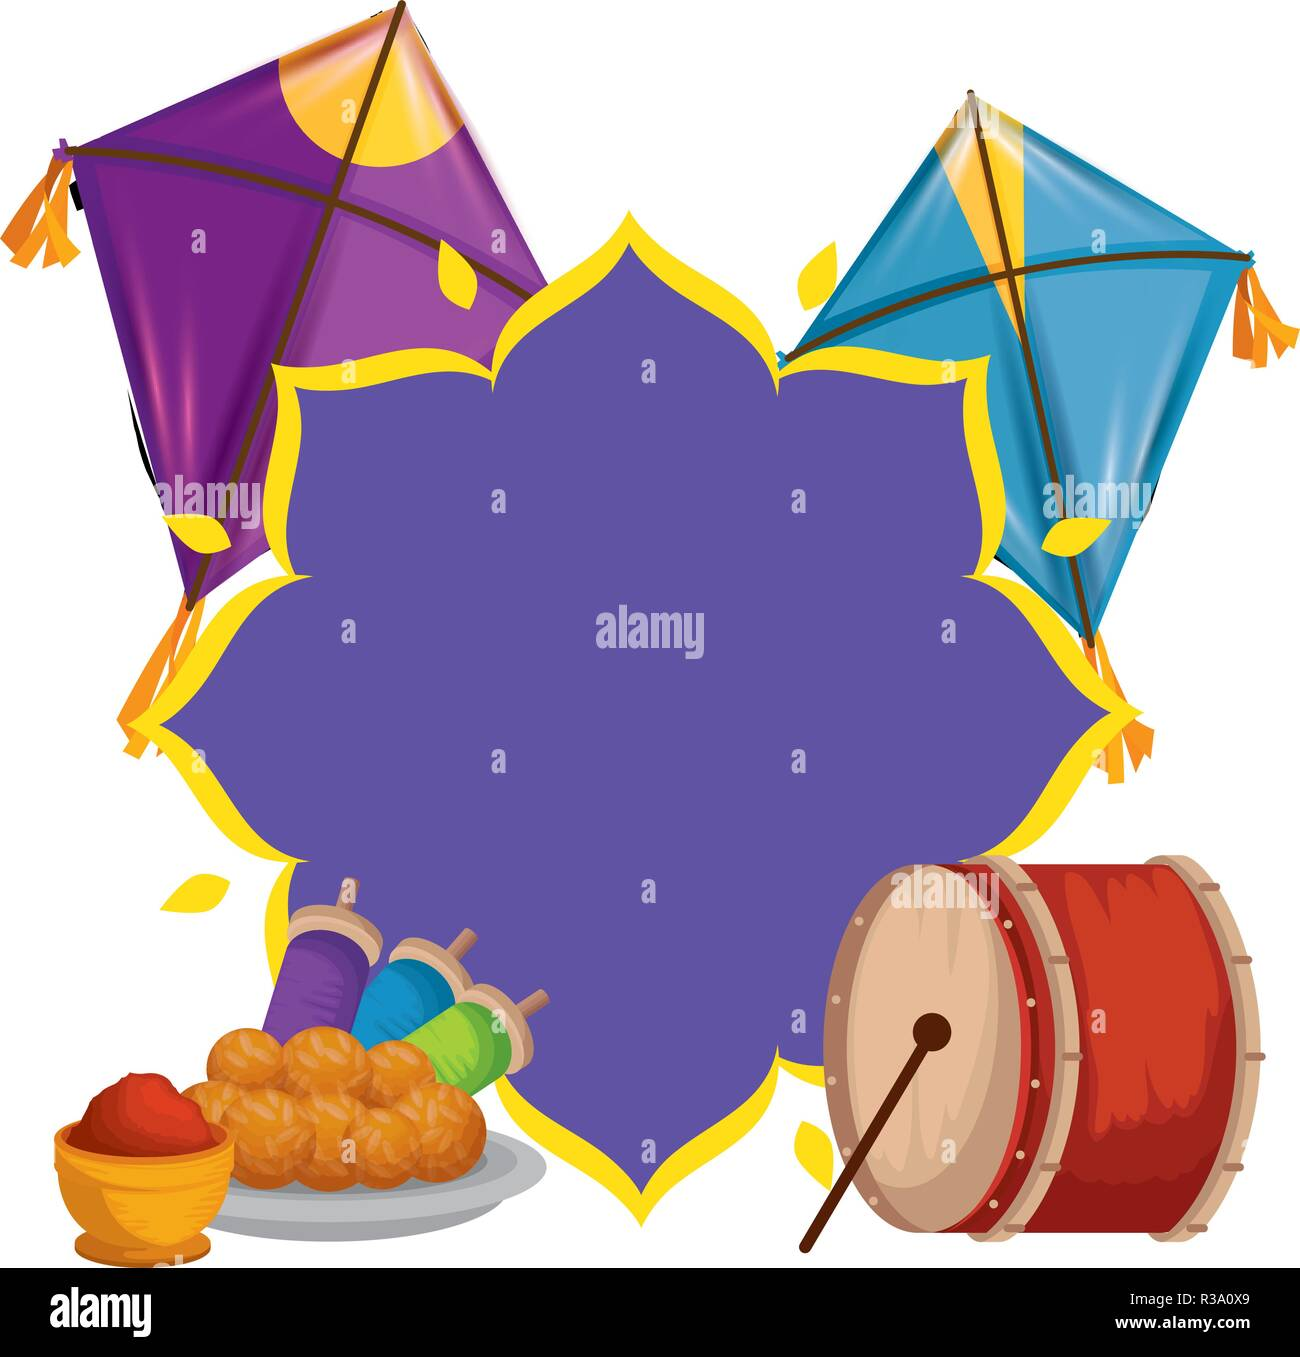 happy lohri celebration icons - Stock Vector